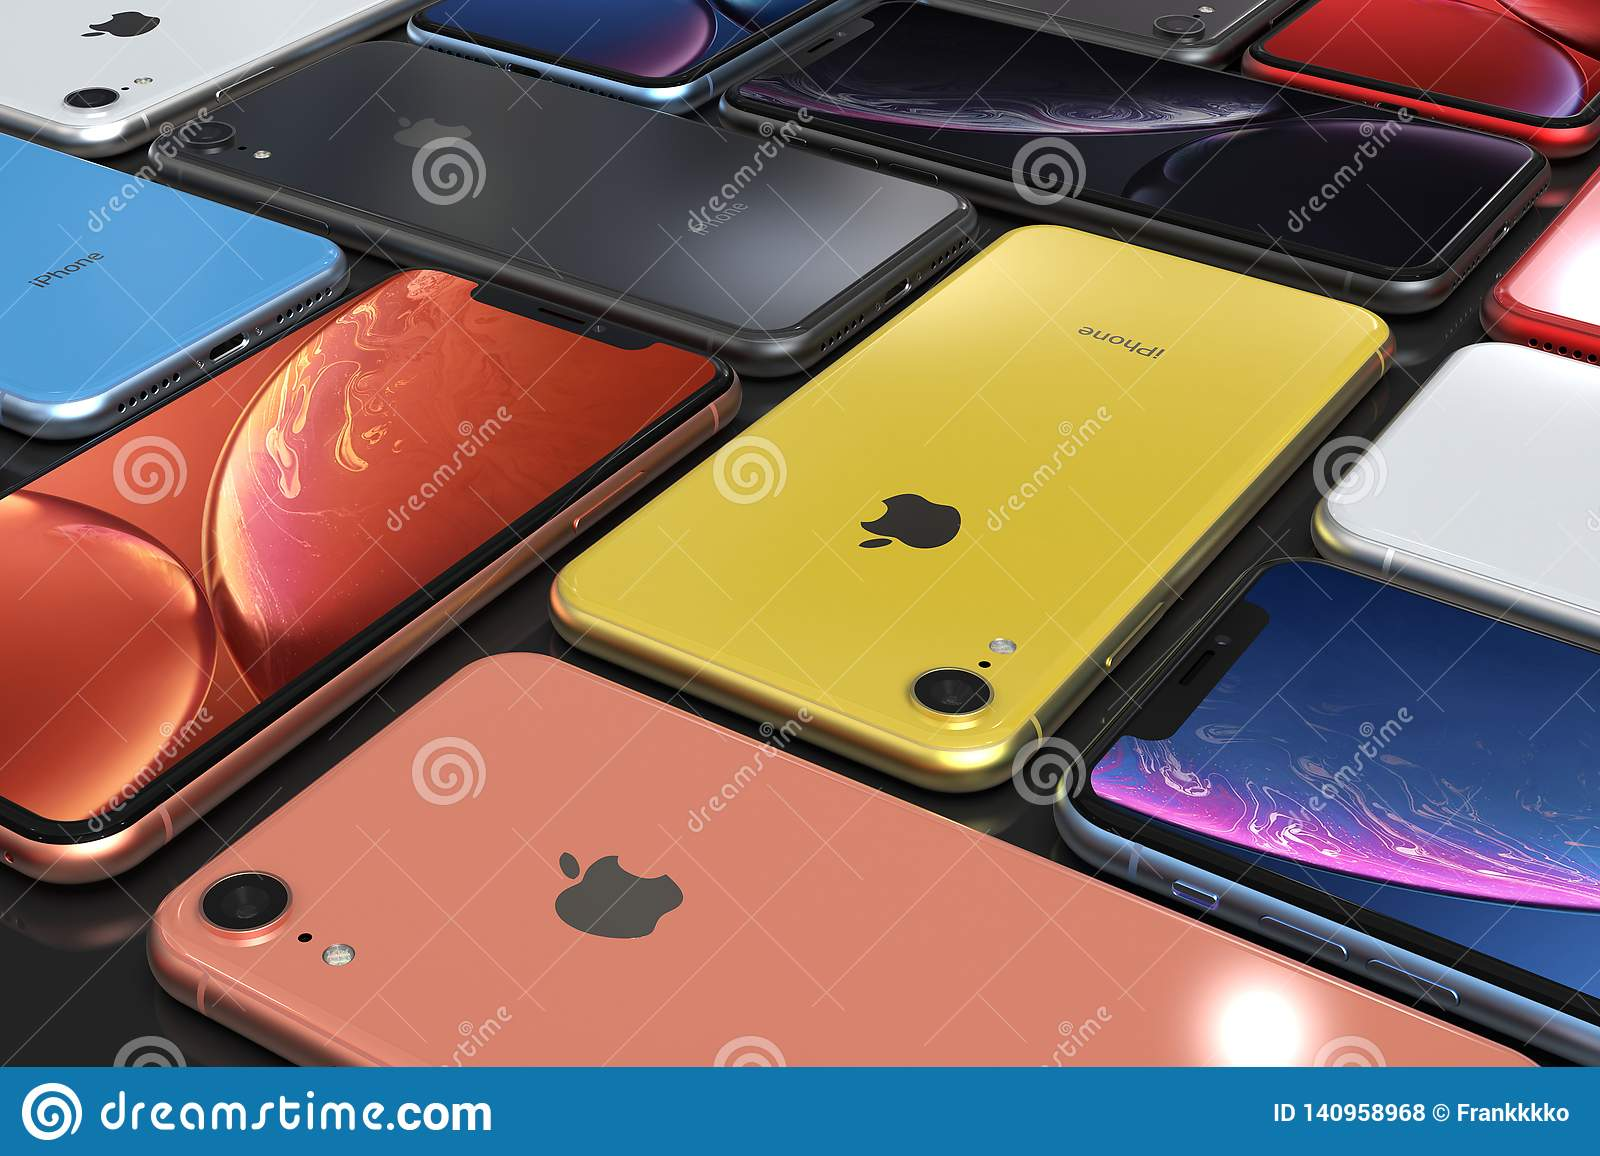 Apple Iphone Xr All Colours Mosaic Arrangement Original Wallpaper Editorial Stock Photo Illustration Of Connection Grid 140958968